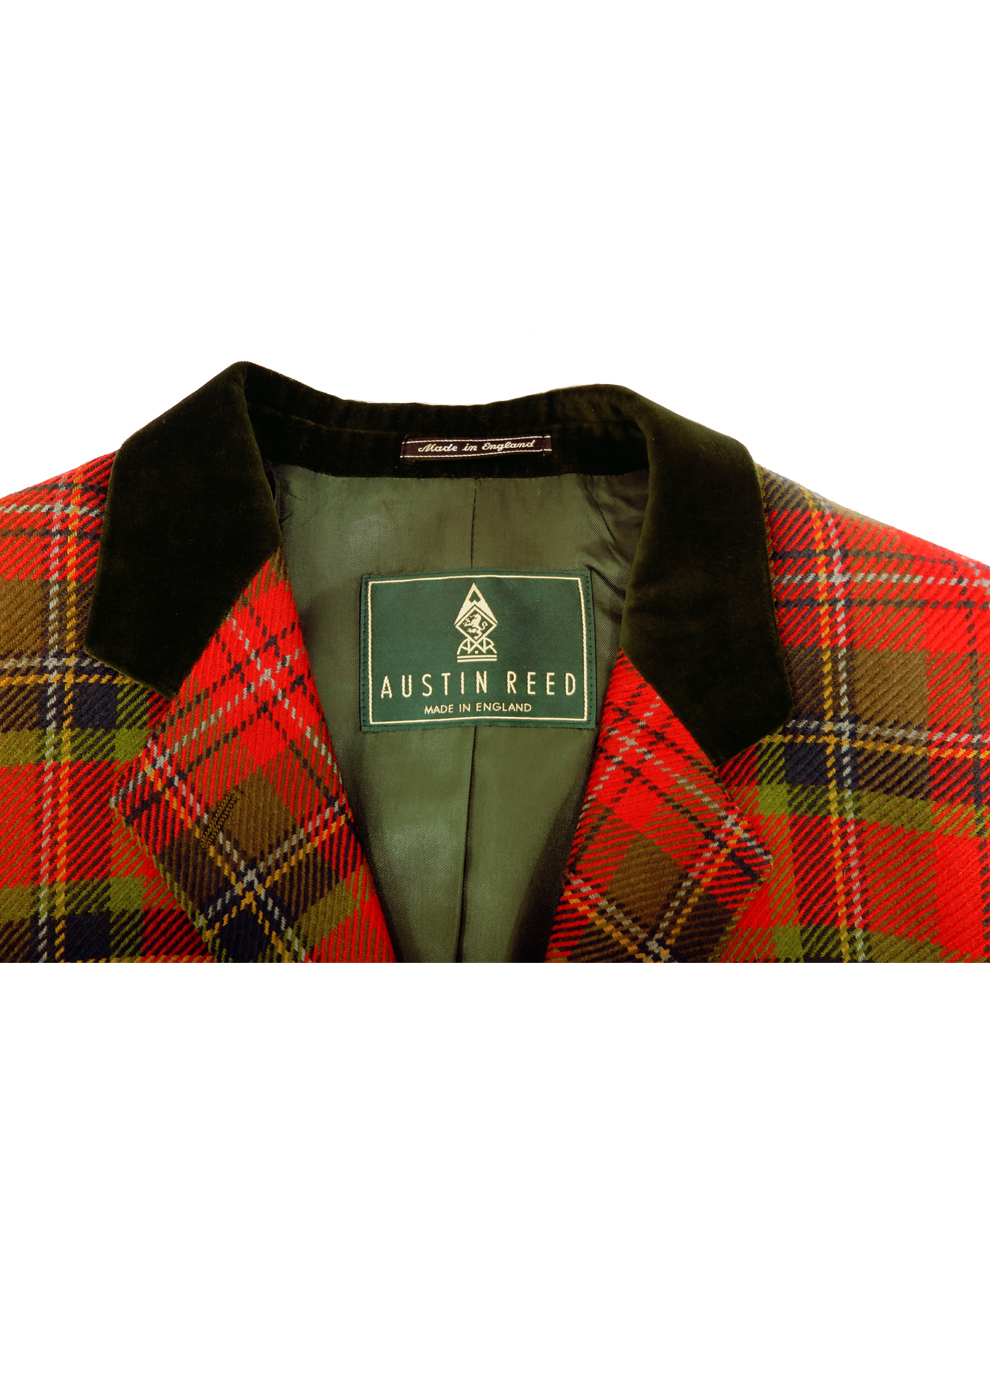 Austin Reed Red Green Tartan Jacket With Velvet Collar S M Reign Vintage